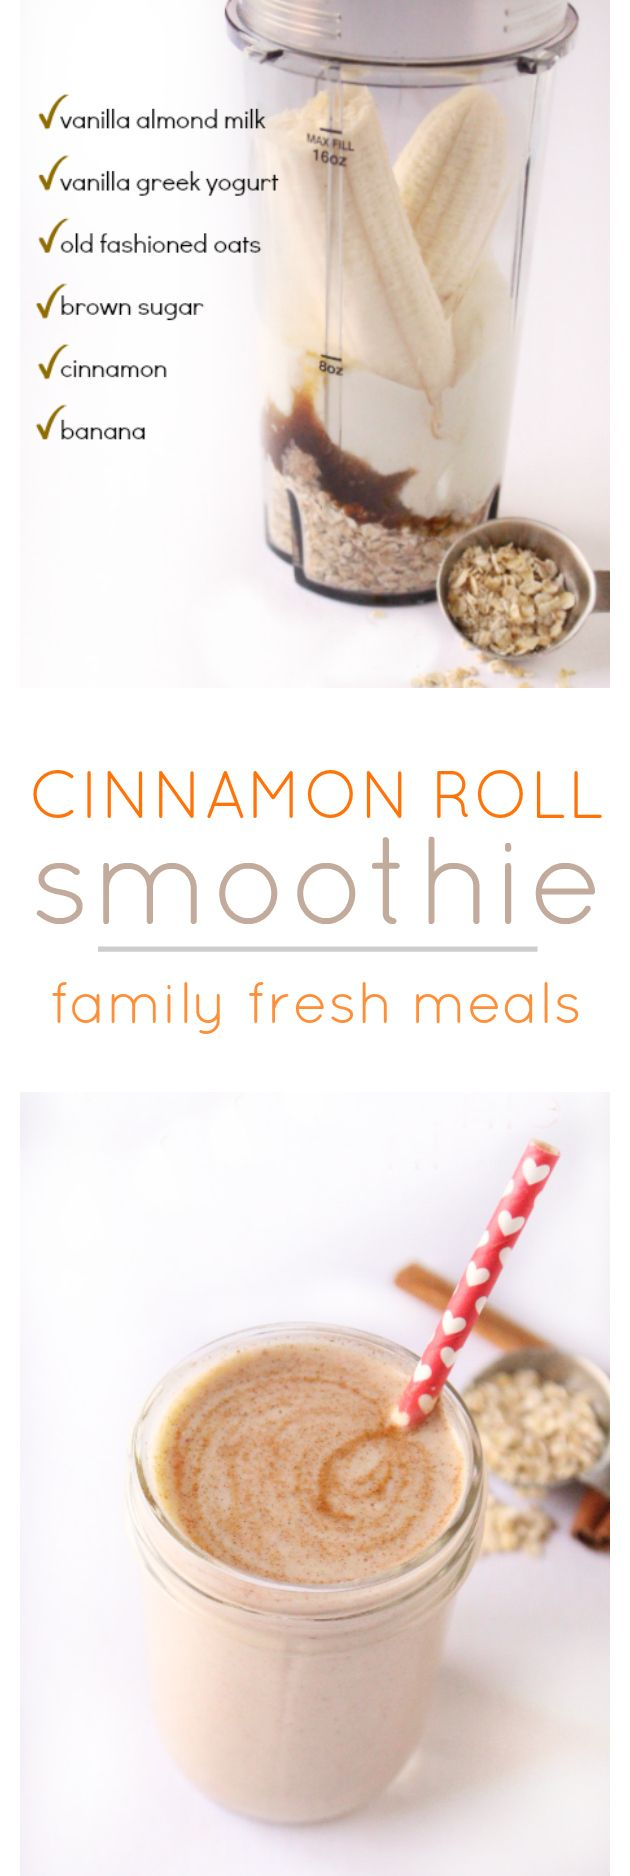 Cinnamon Roll Smoothie! Taste just like a cinnamon bun shoved into a glass. Click through for recipe!